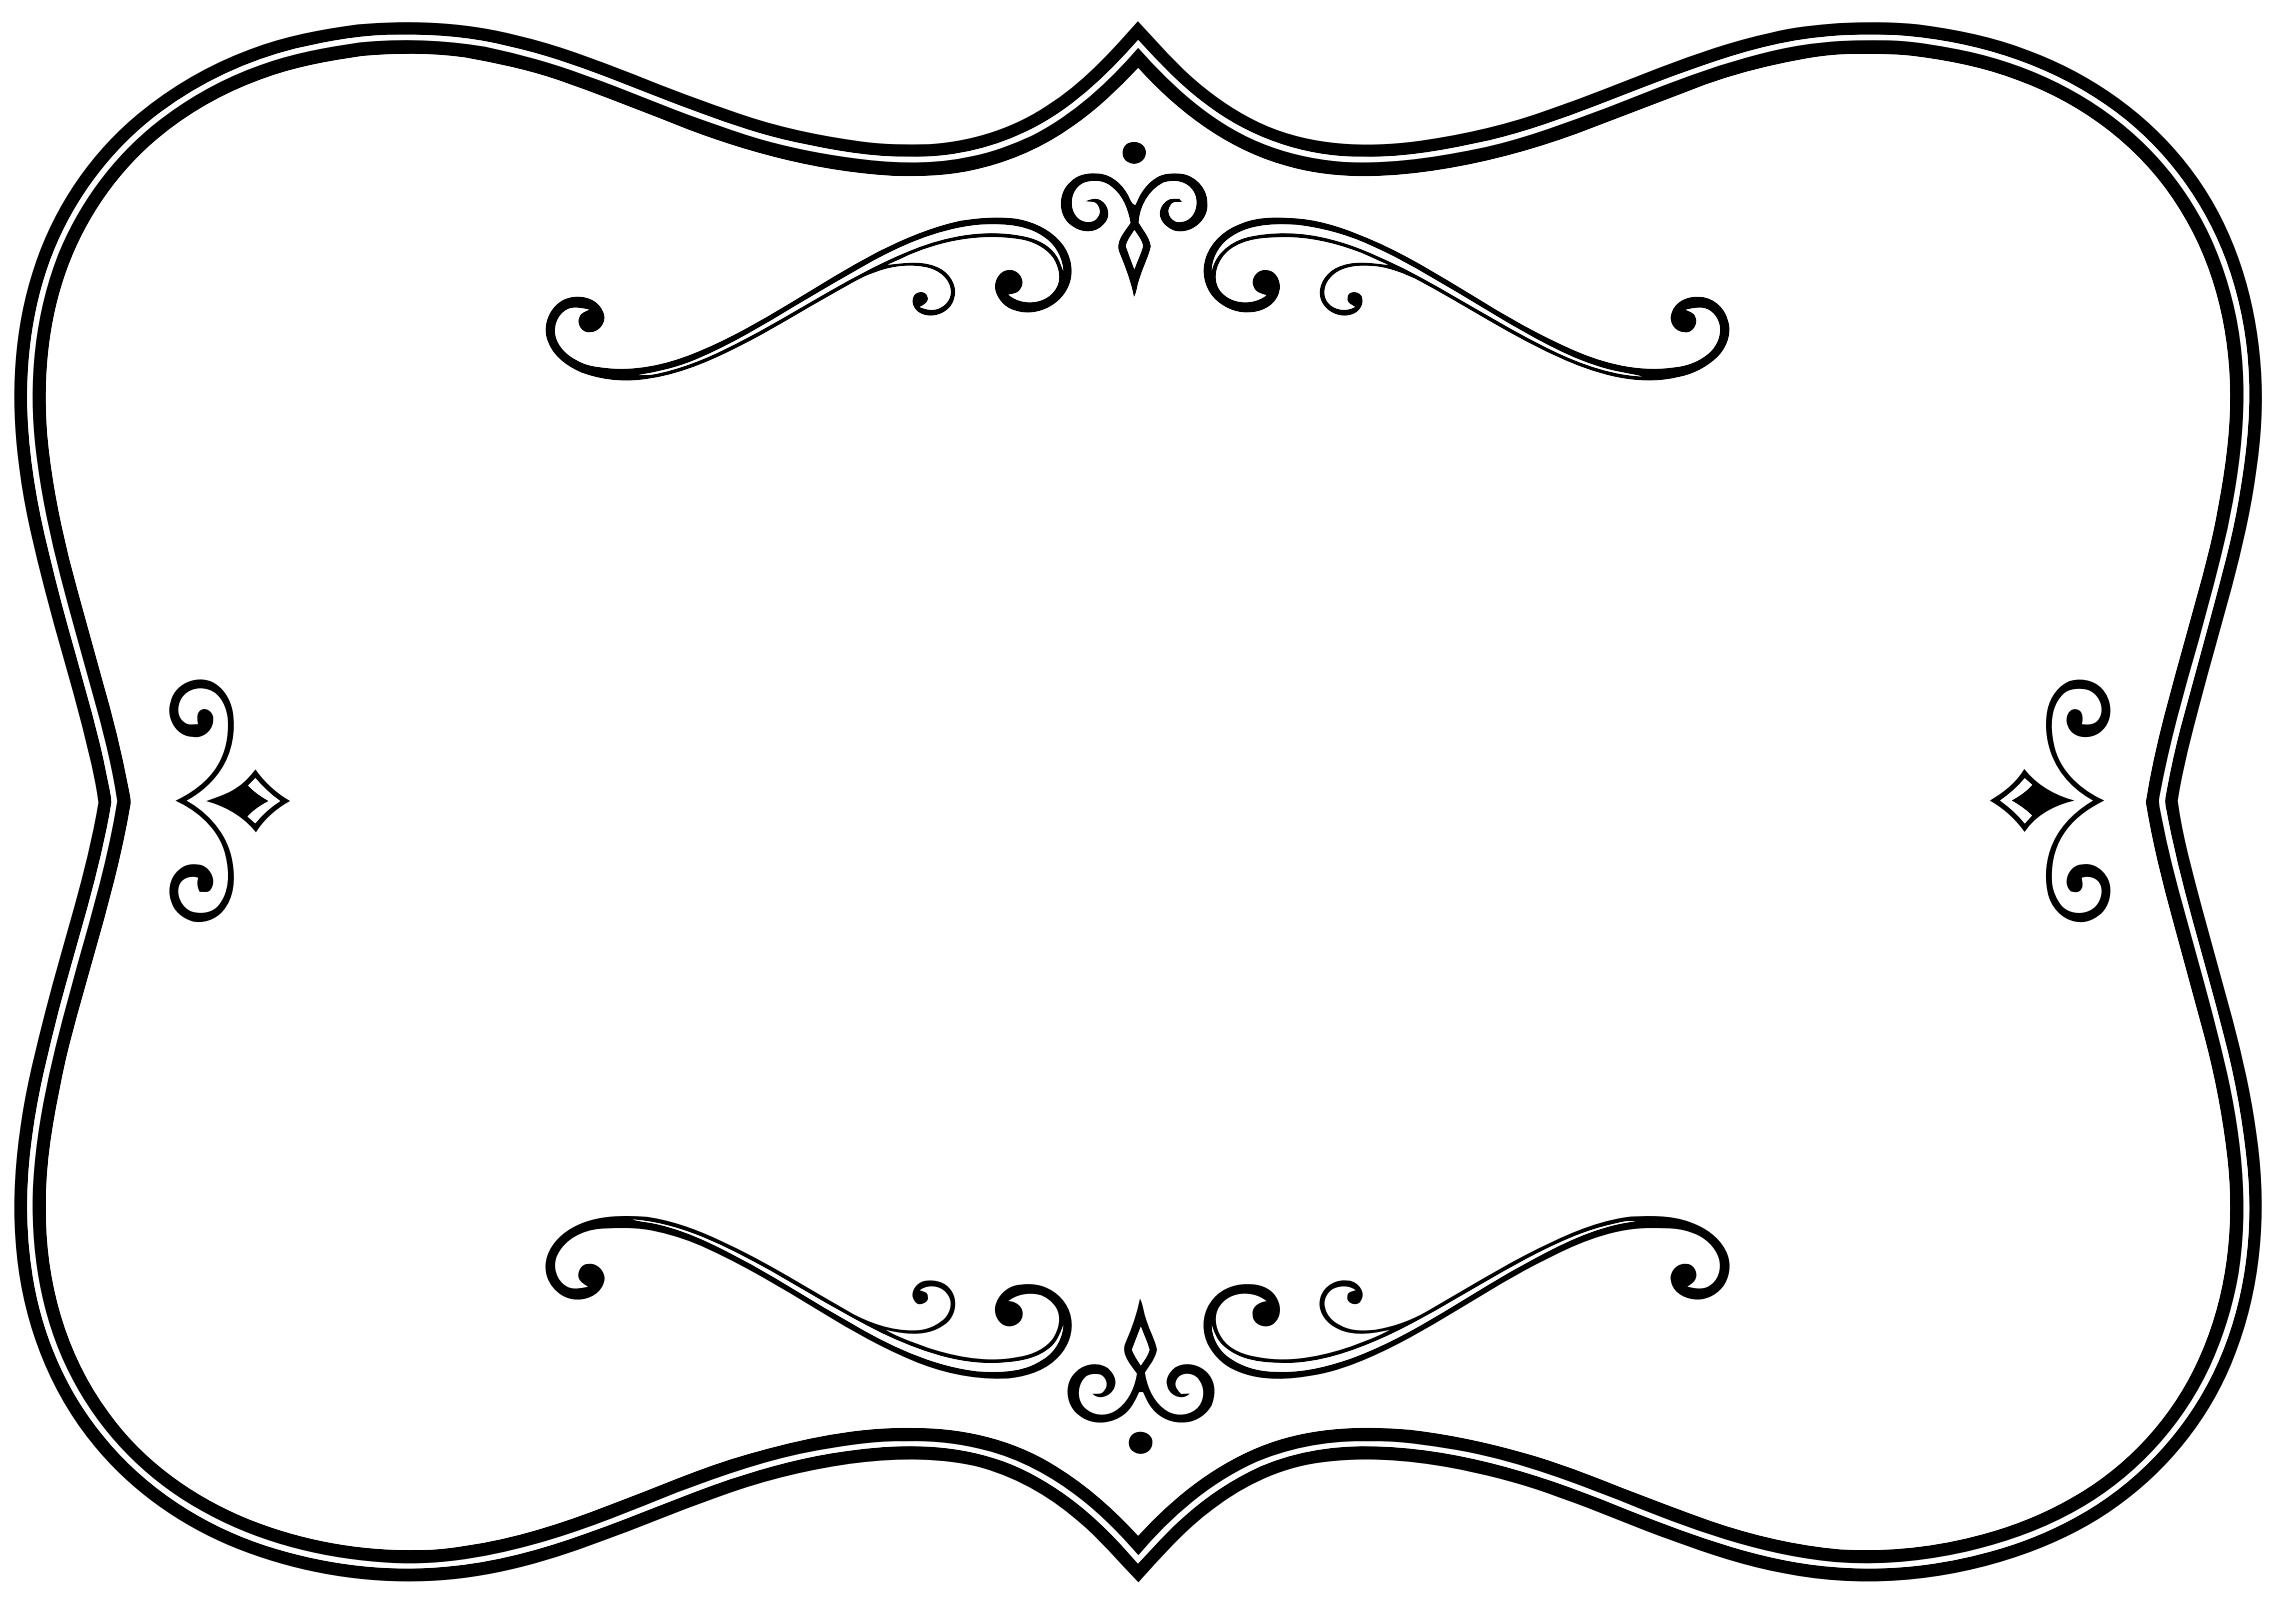 Decorative clipart decorative shape, Decorative decorative ...